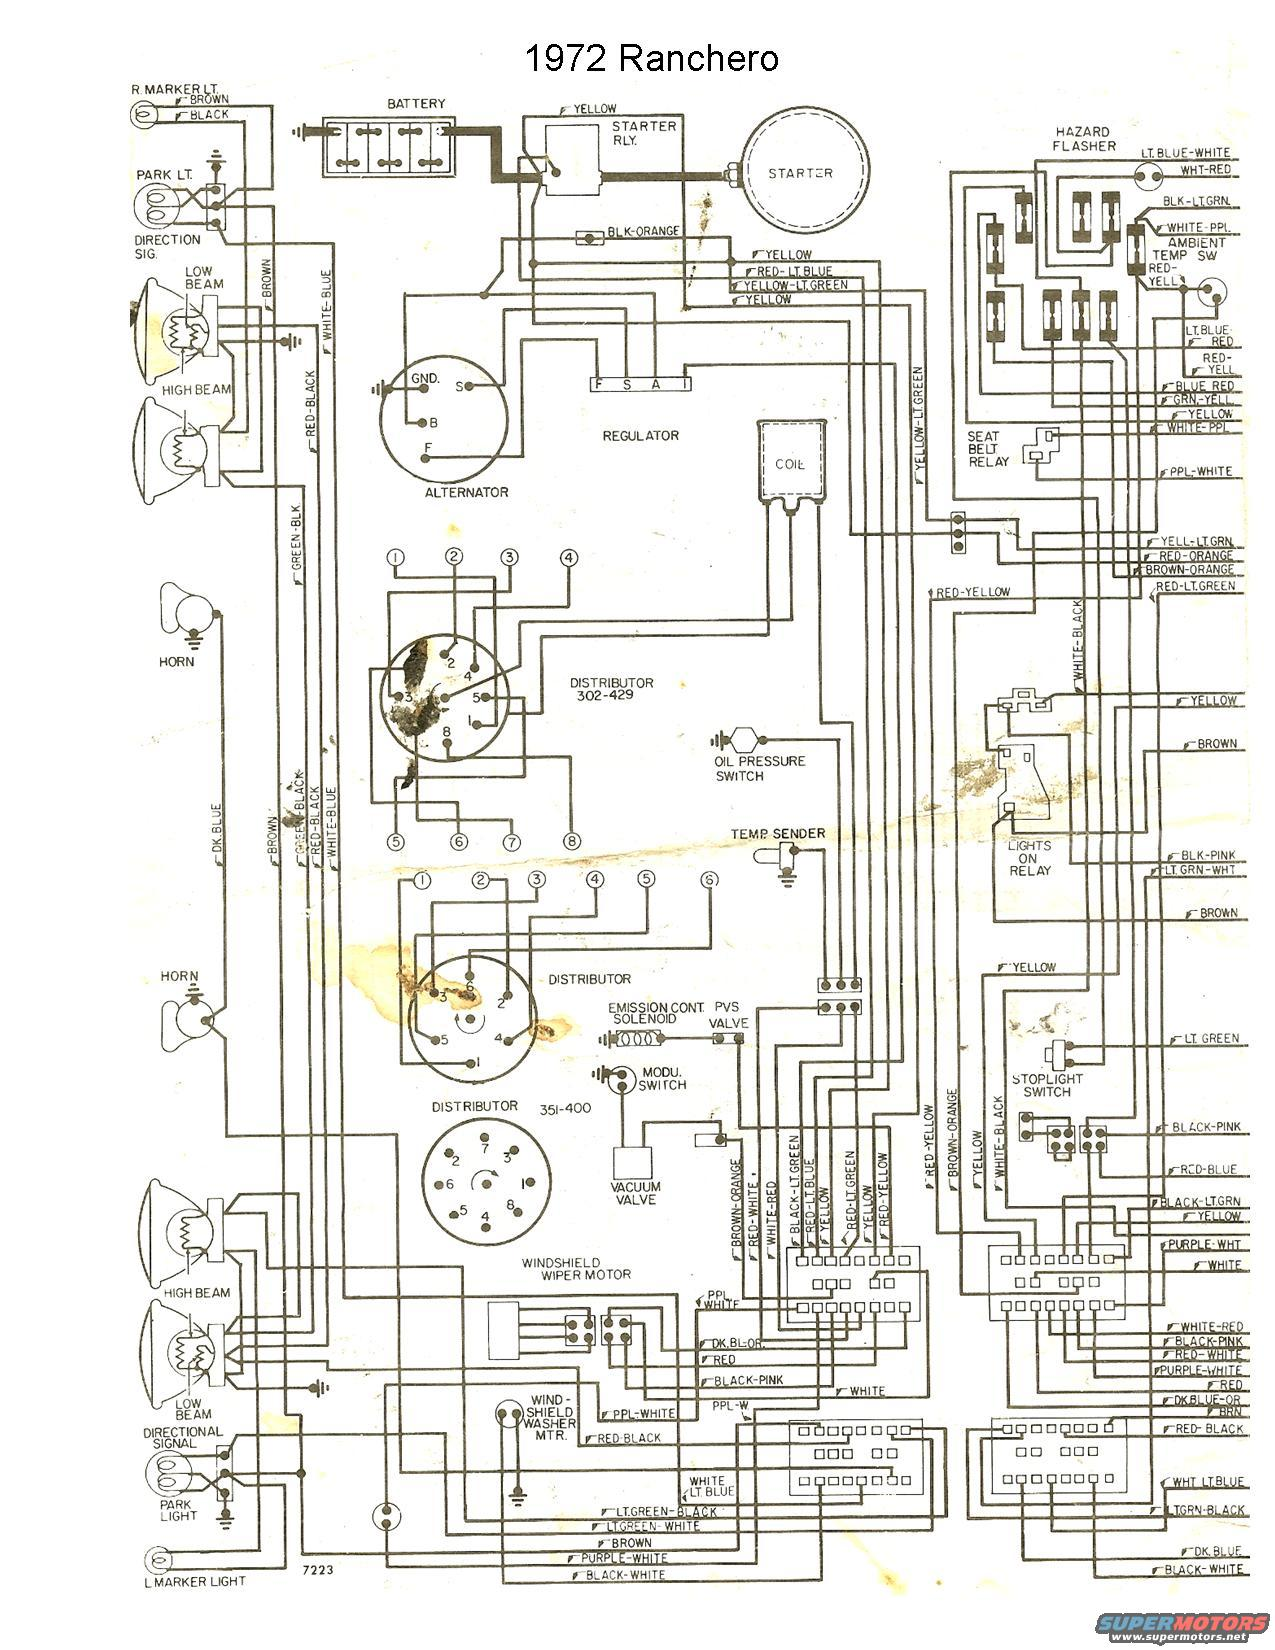 hight resolution of 72 76 wiring diagrams ranchero us 1972 ford alternator wiring diagram 1972 ford wiring diagram